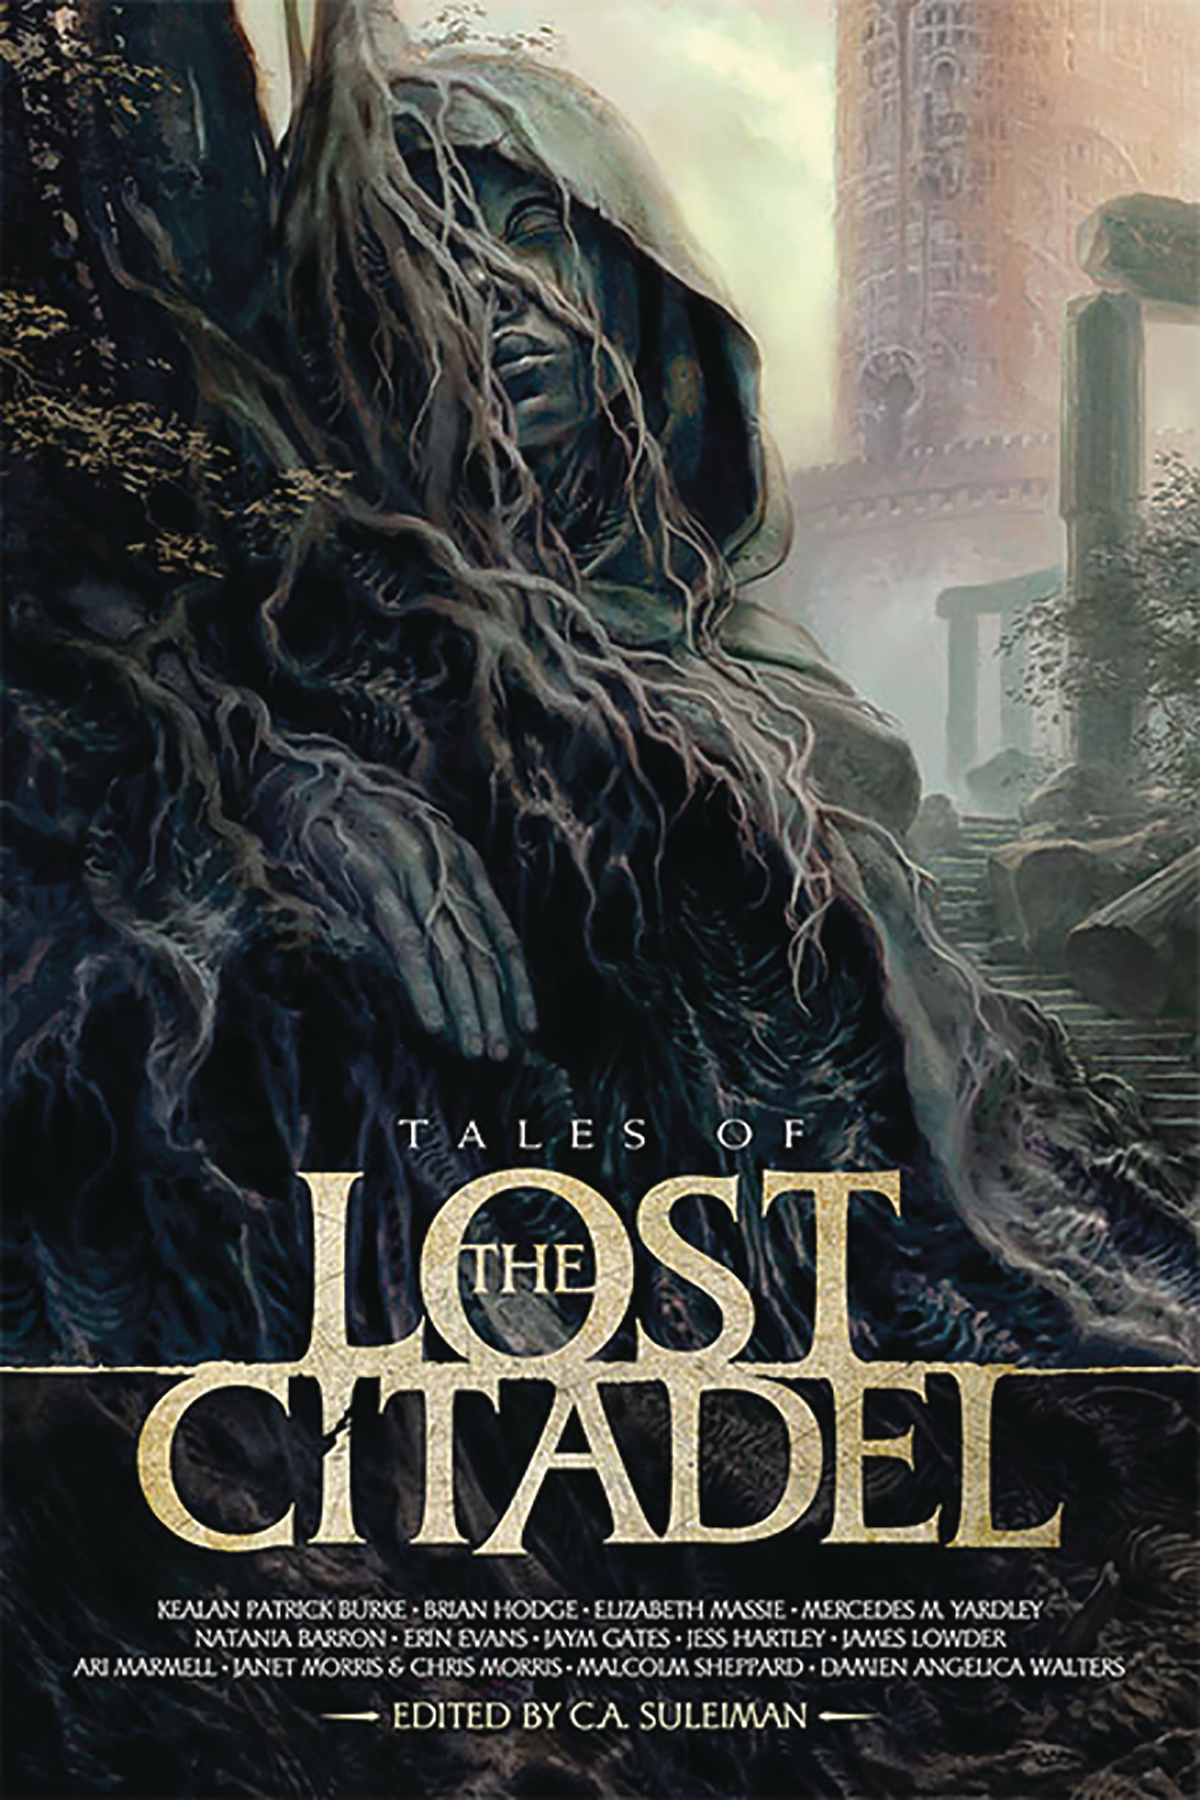 TALES OF THE LOST CITADEL PROSE ANTHOLOGY